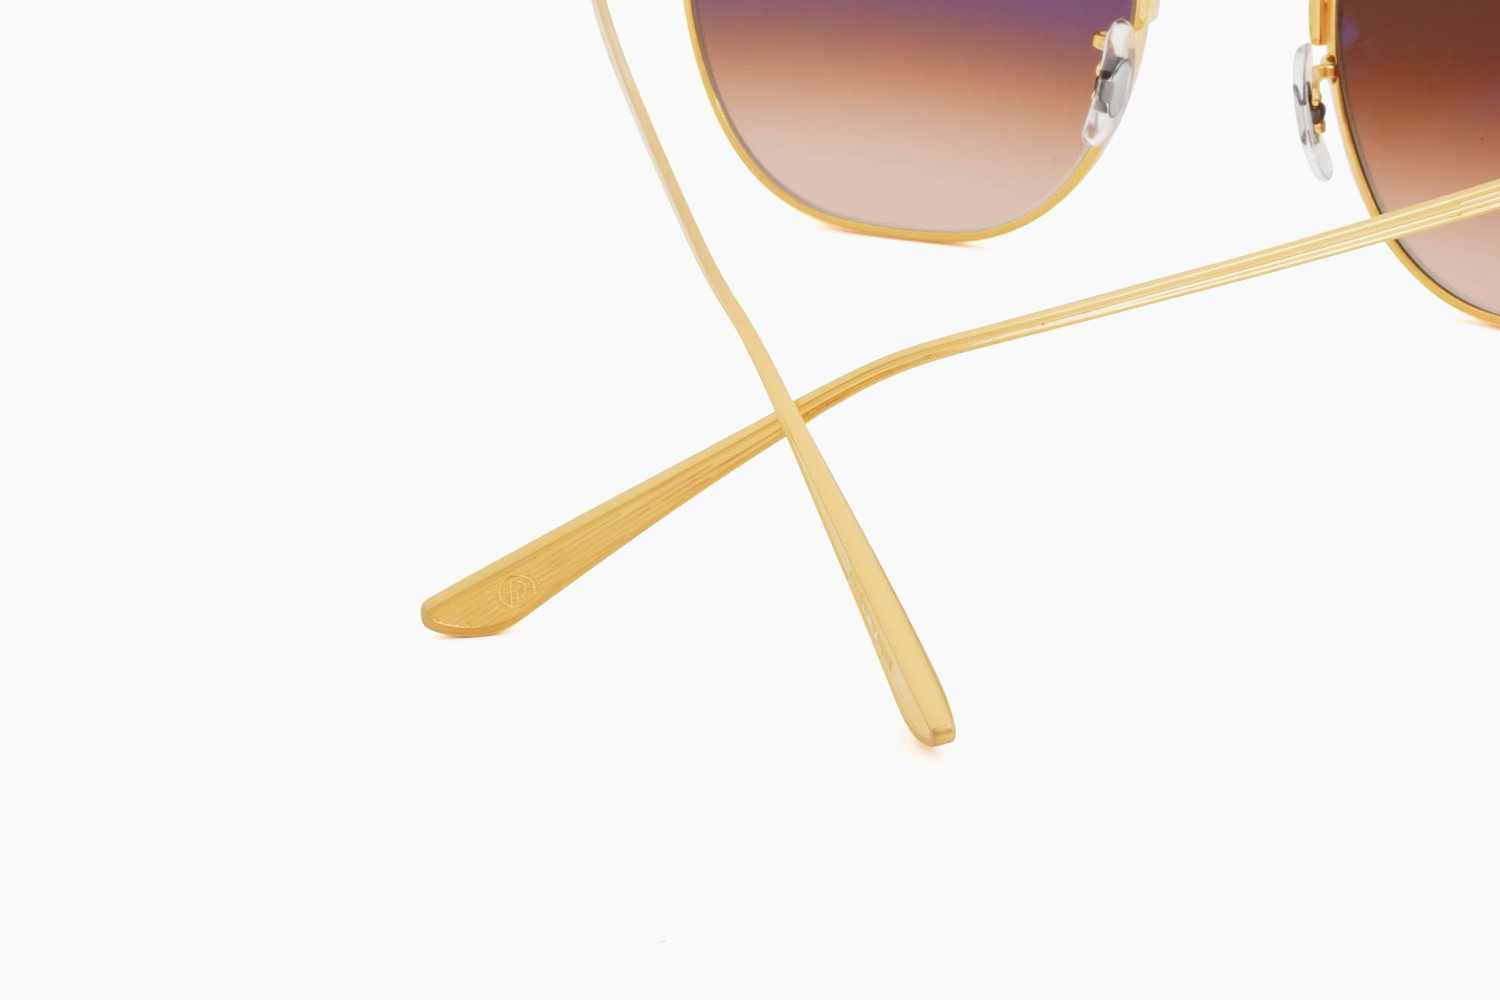 OLIVER PEOPLES THE ROW|Board Meeting 2  - Yellow Gold|SUNGLASSES COLLECTION - 21SS